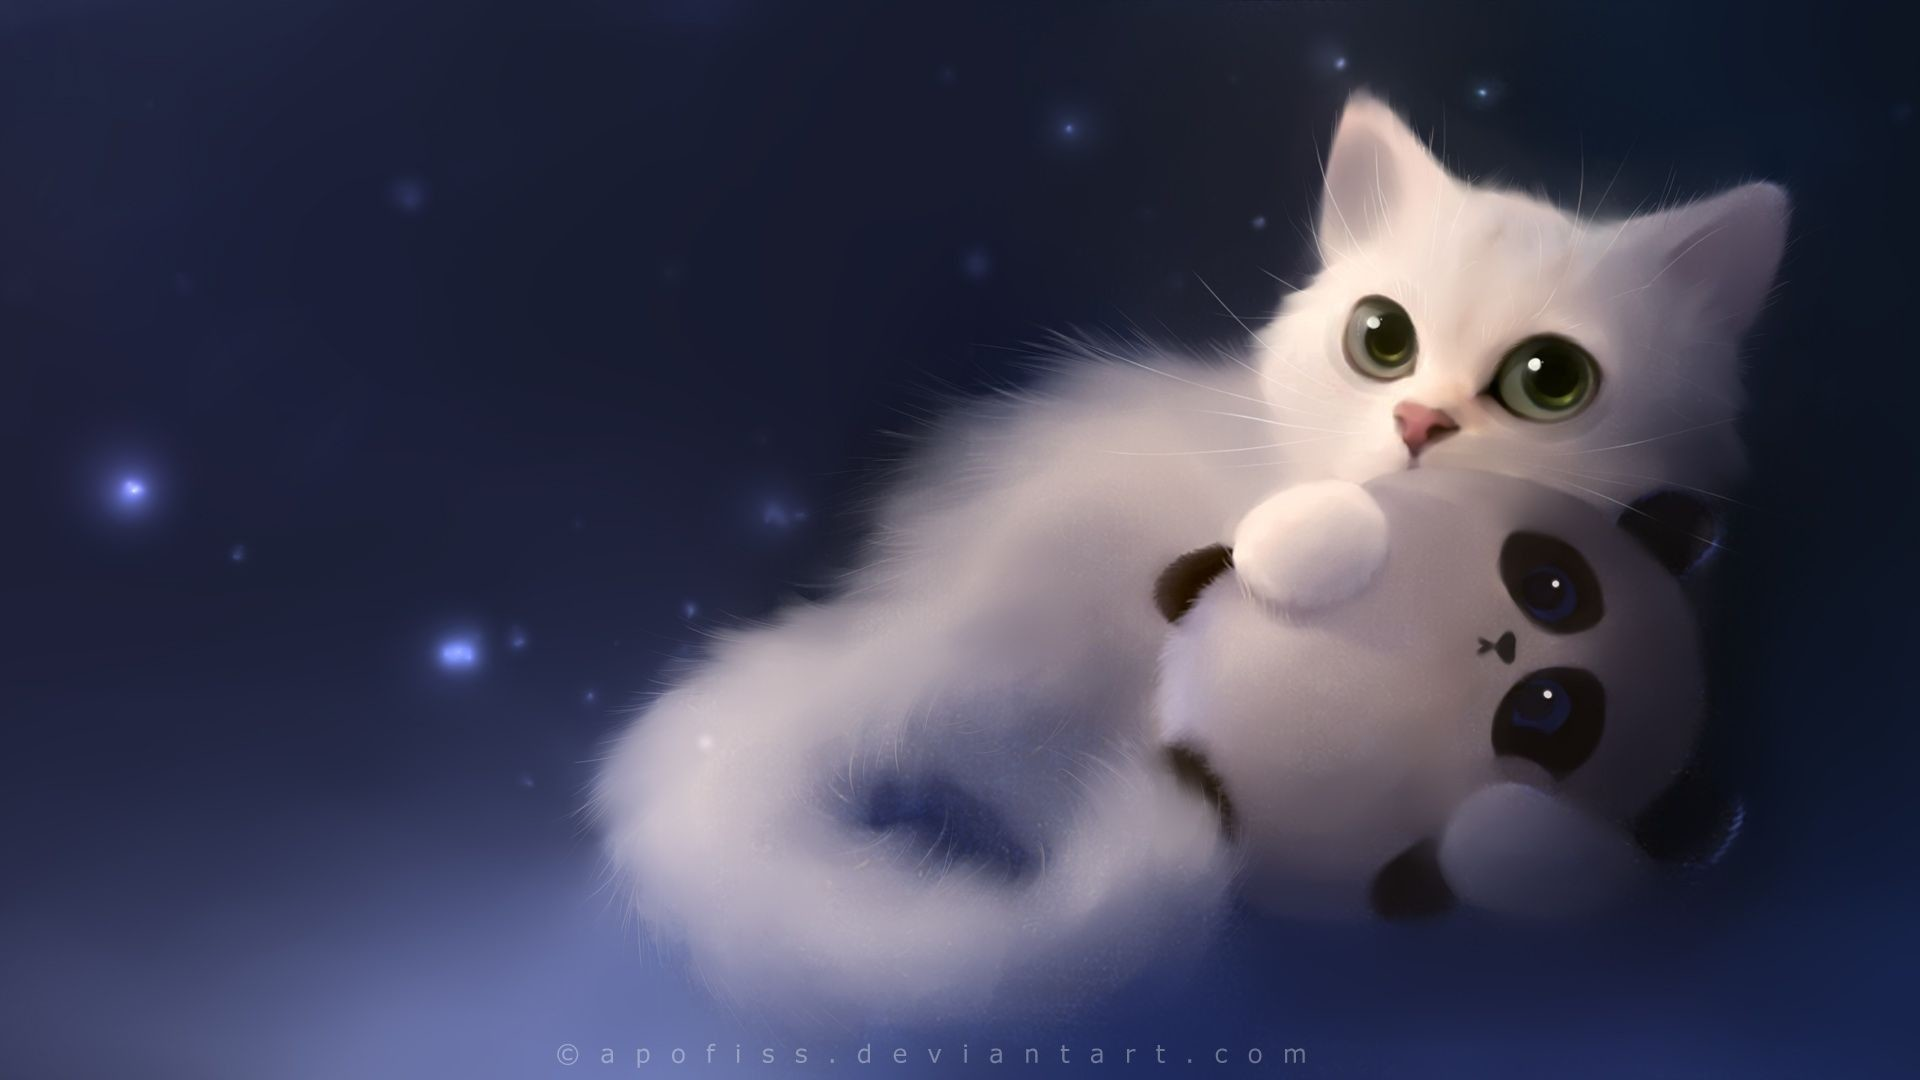 1920x1080  Cute Anime Cat Wallpaper (62+ images)